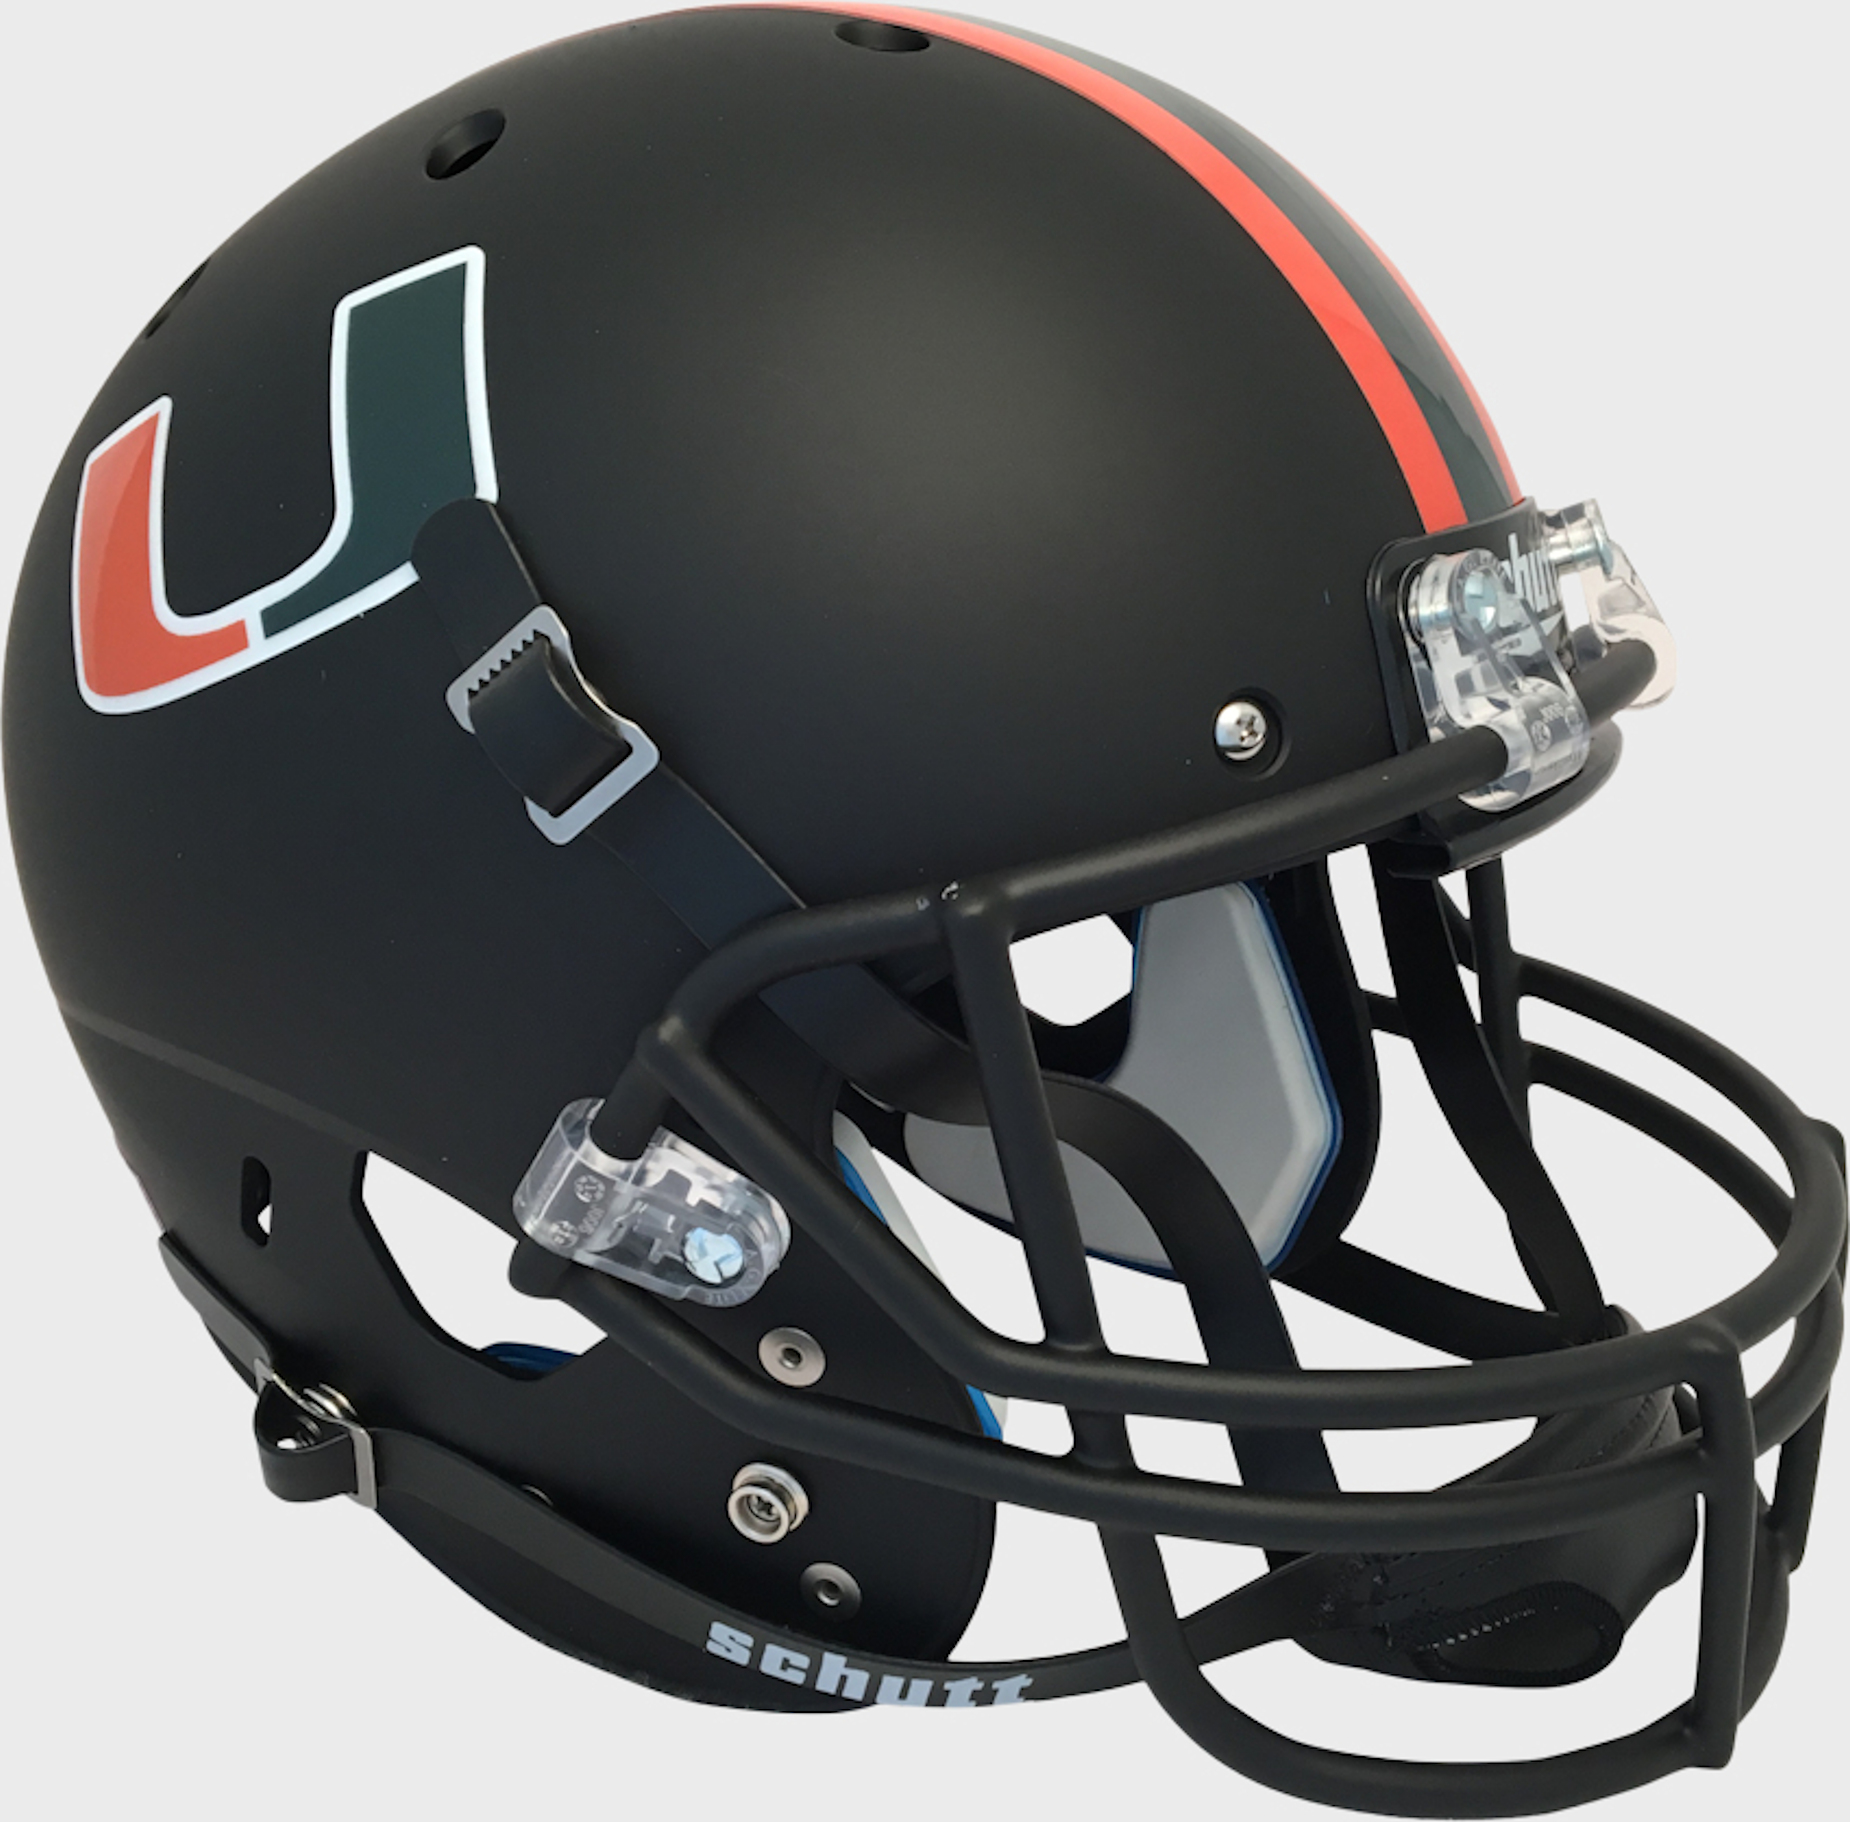 Miami Hurricanes Full XP Replica Football Helmet Schutt <B>Matte Black</B>